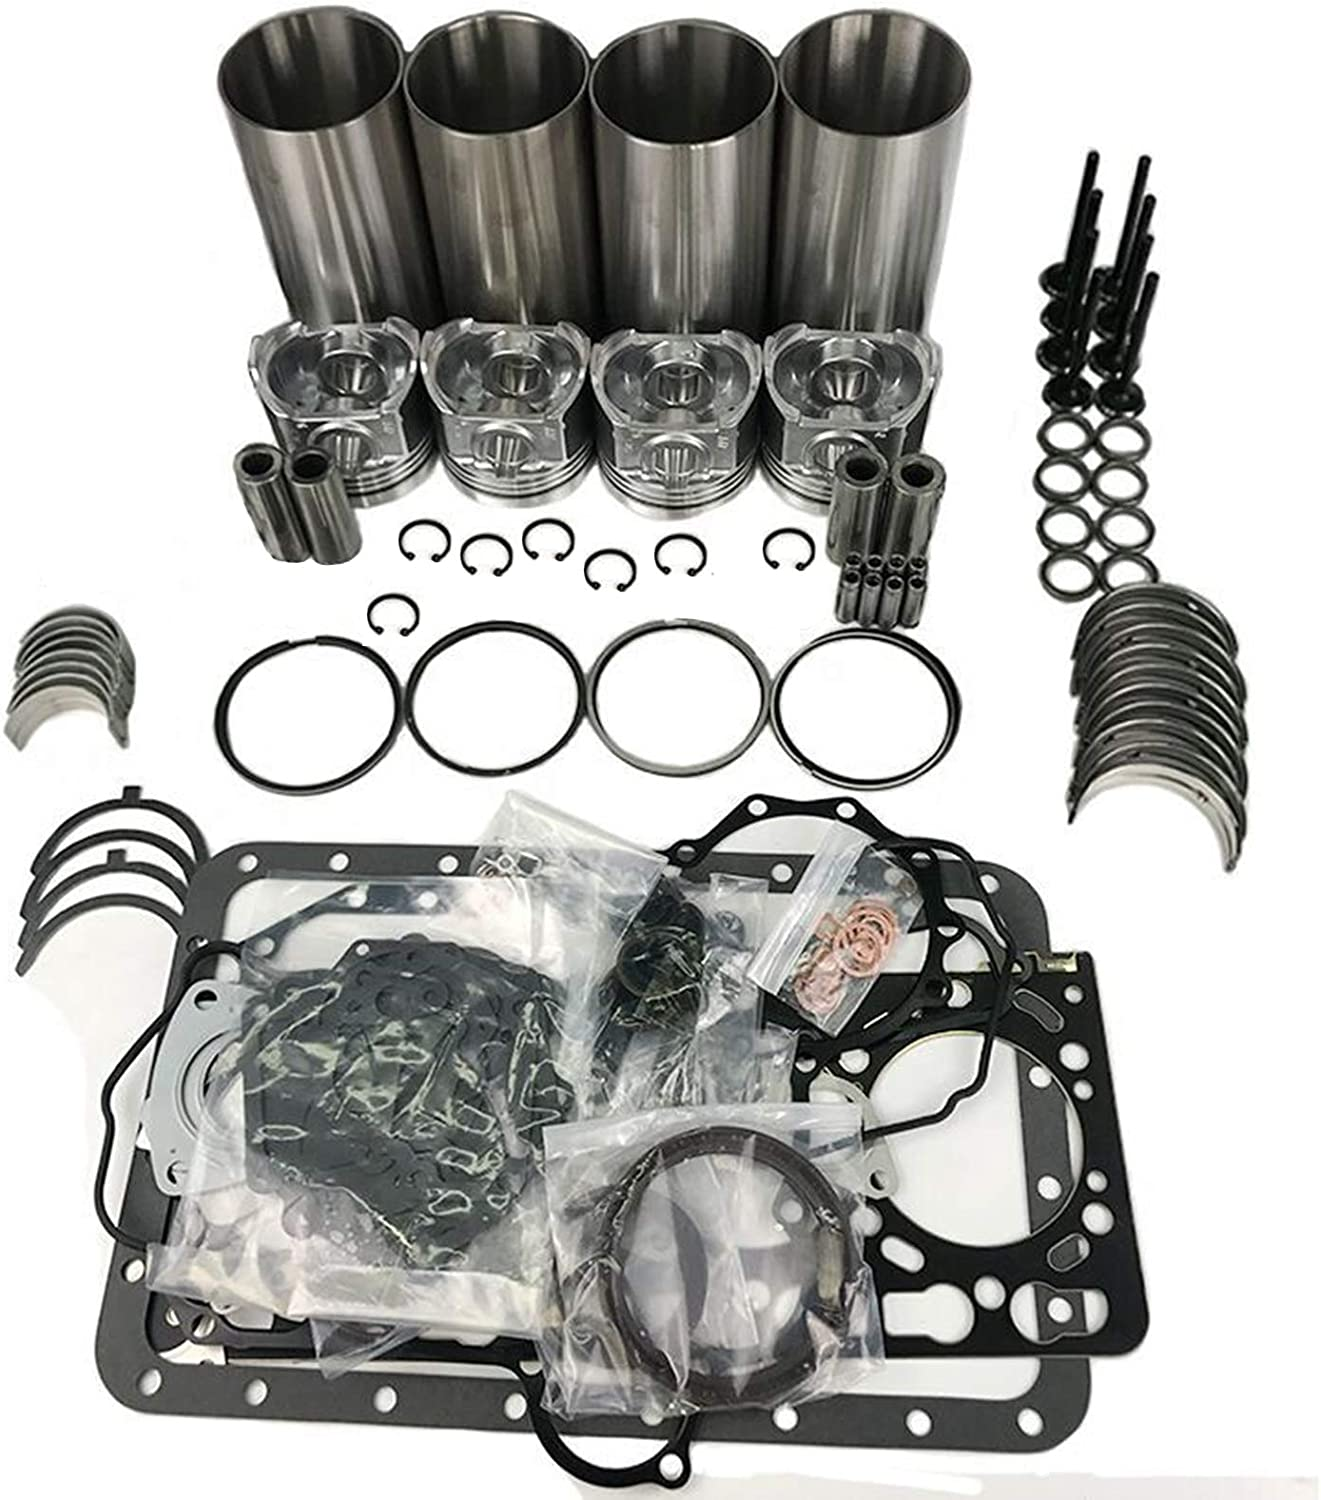 MOKE Max 88% OFF SD22 Overhaul Rebuild Super beauty product restock quality top! Kit with Nissan For Compatible engine